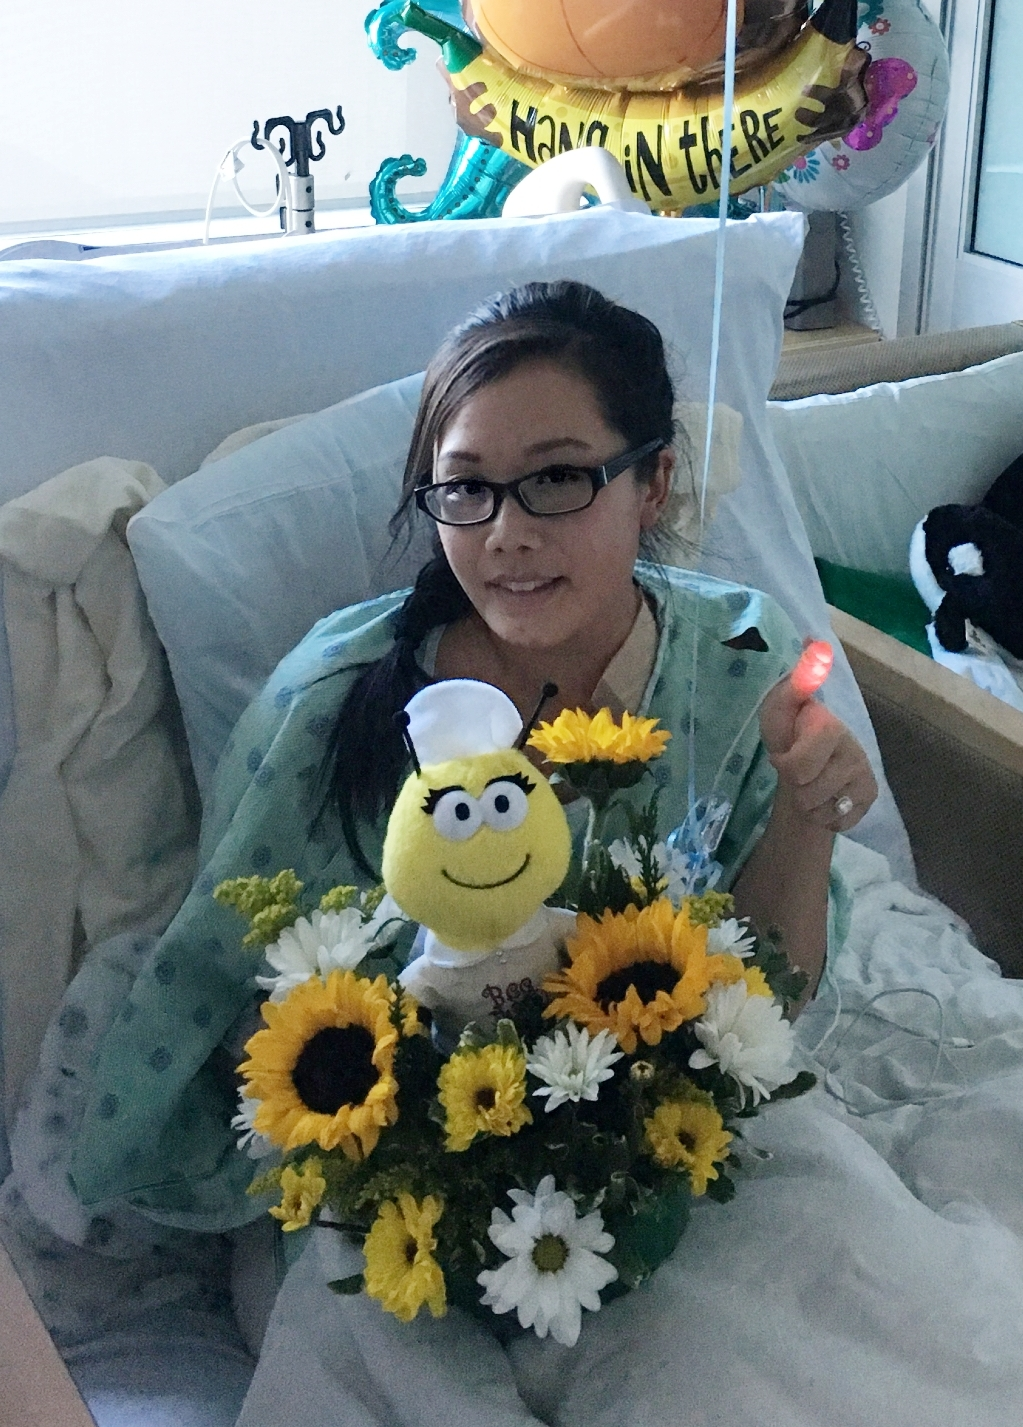 Stephanie in the hospital bed during Week 1.